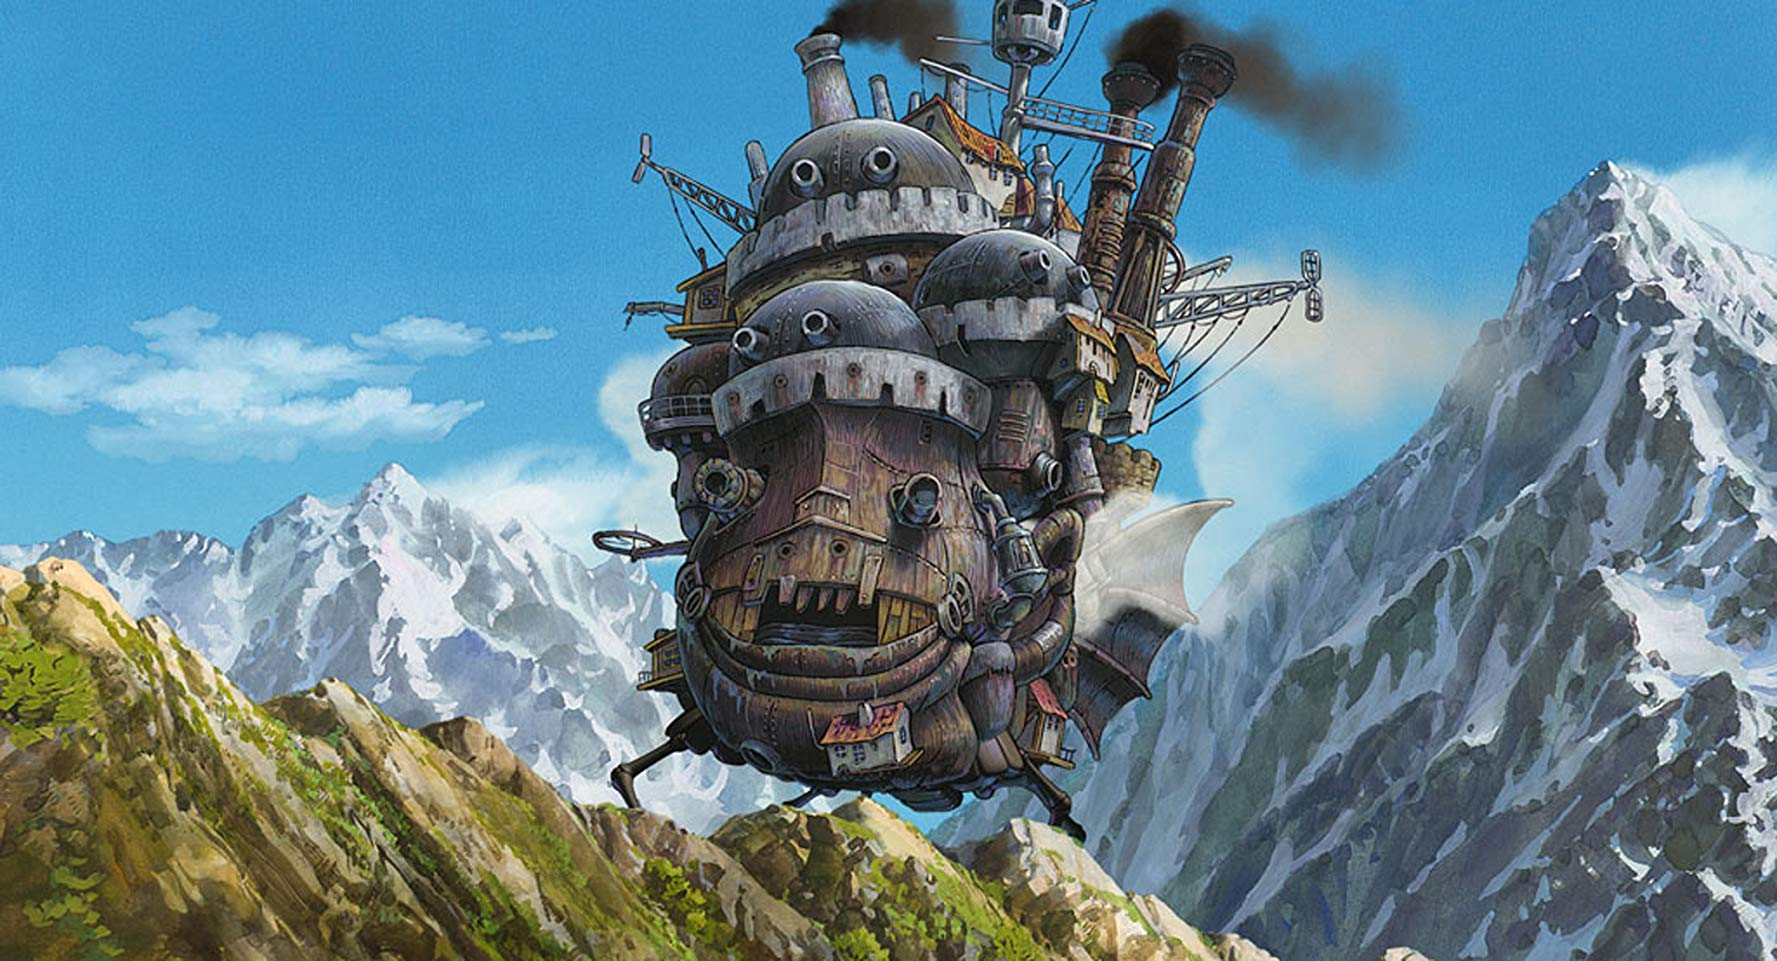 The castle in Howl's Moving Castle (2004)